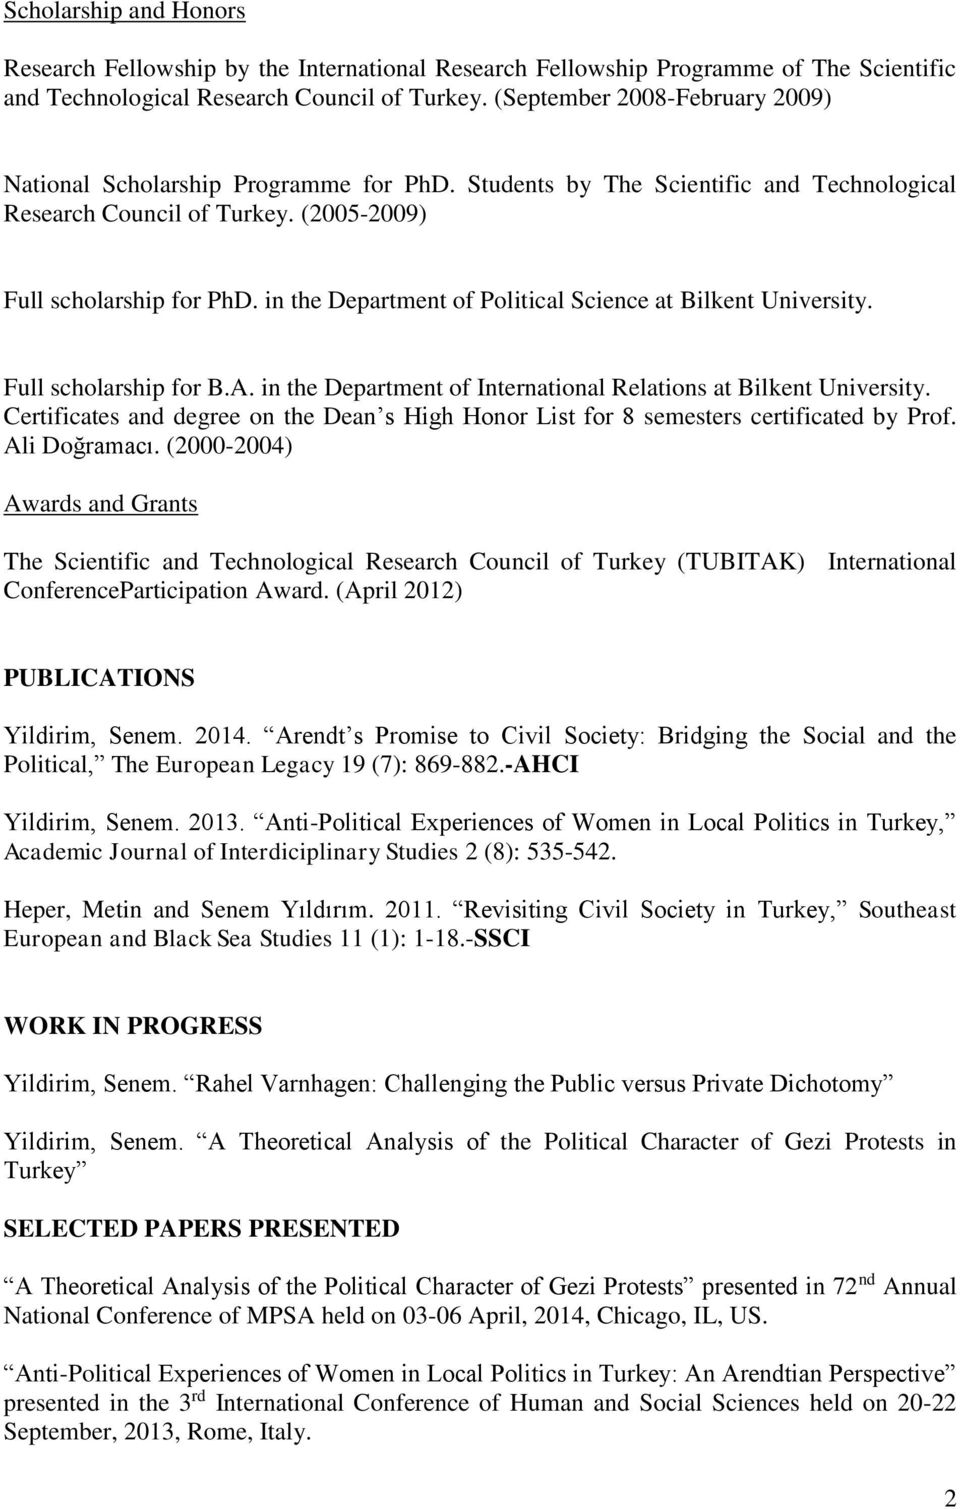 Political Science Internship Resume   http   topresume info     Political Science Student Resume For Internship Format Also Good Point For  Overview